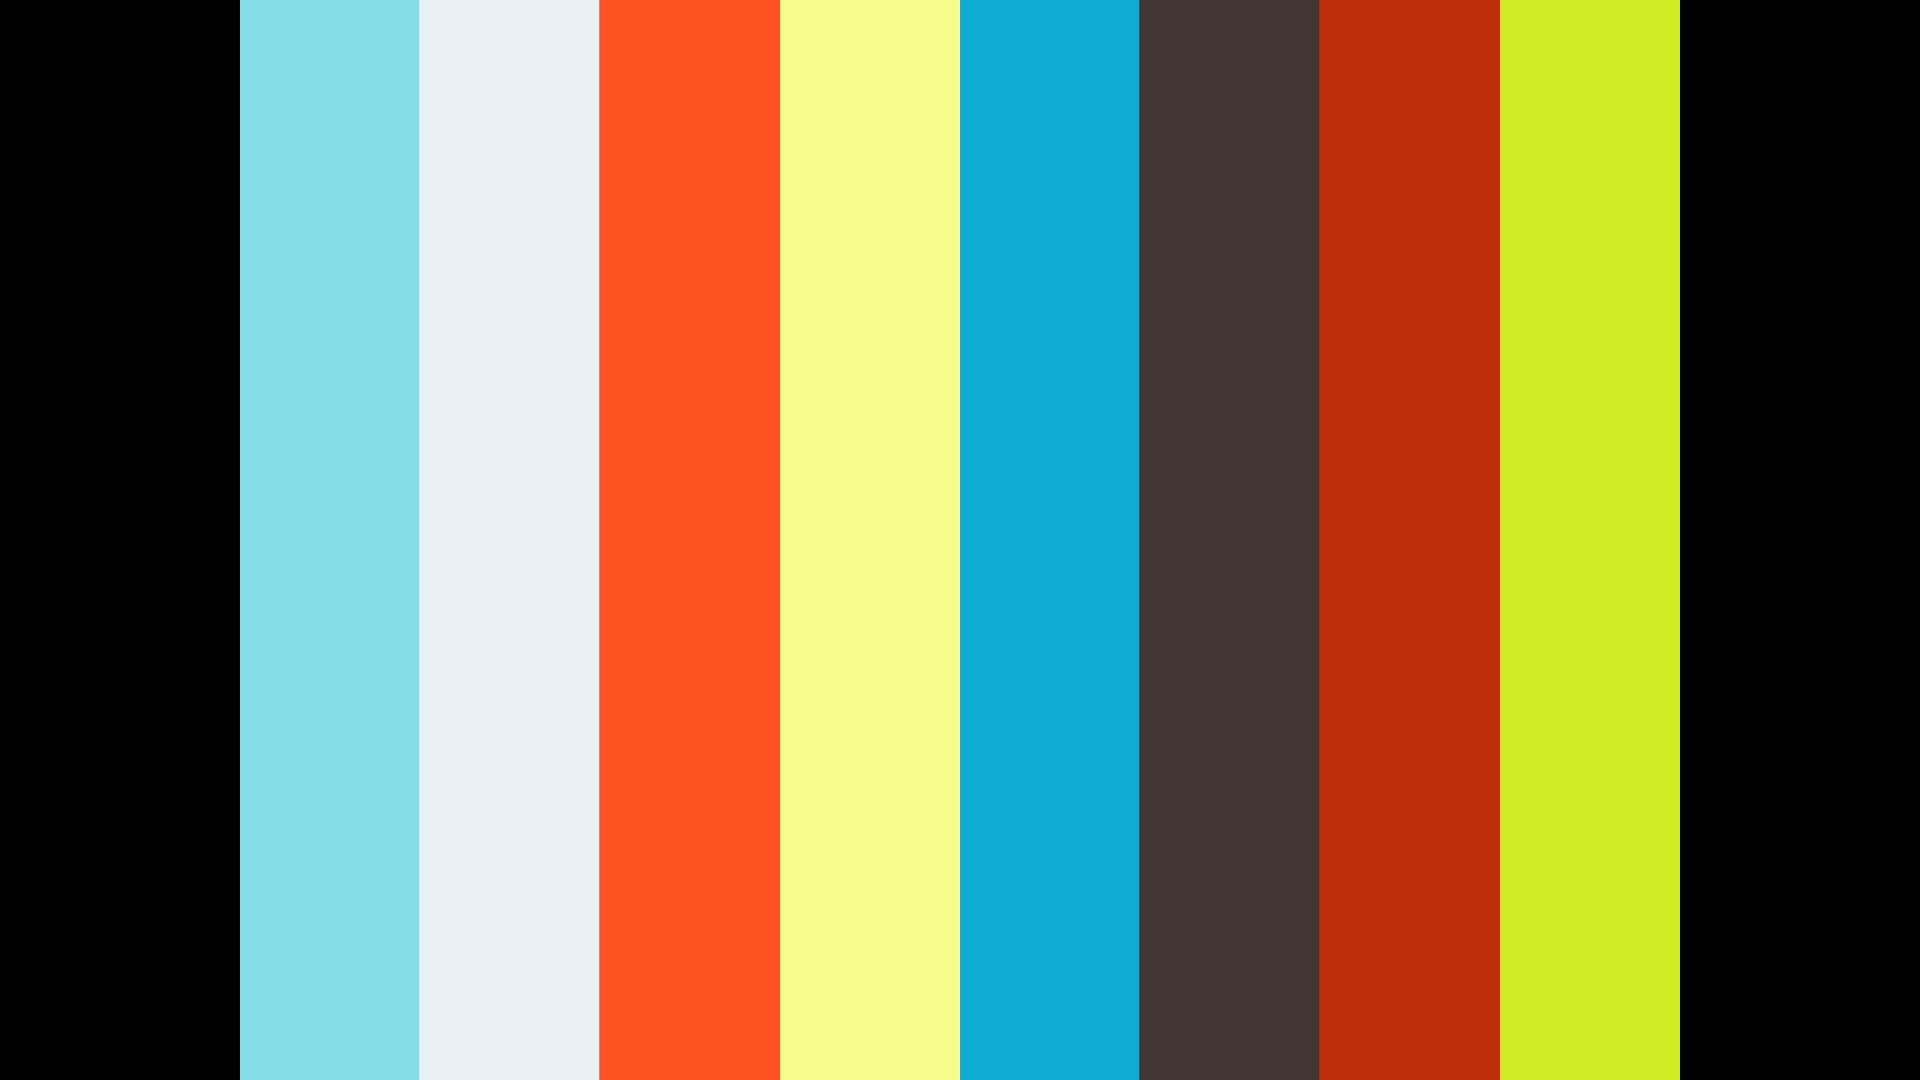 Mayfair House, Short Version 02:05:17